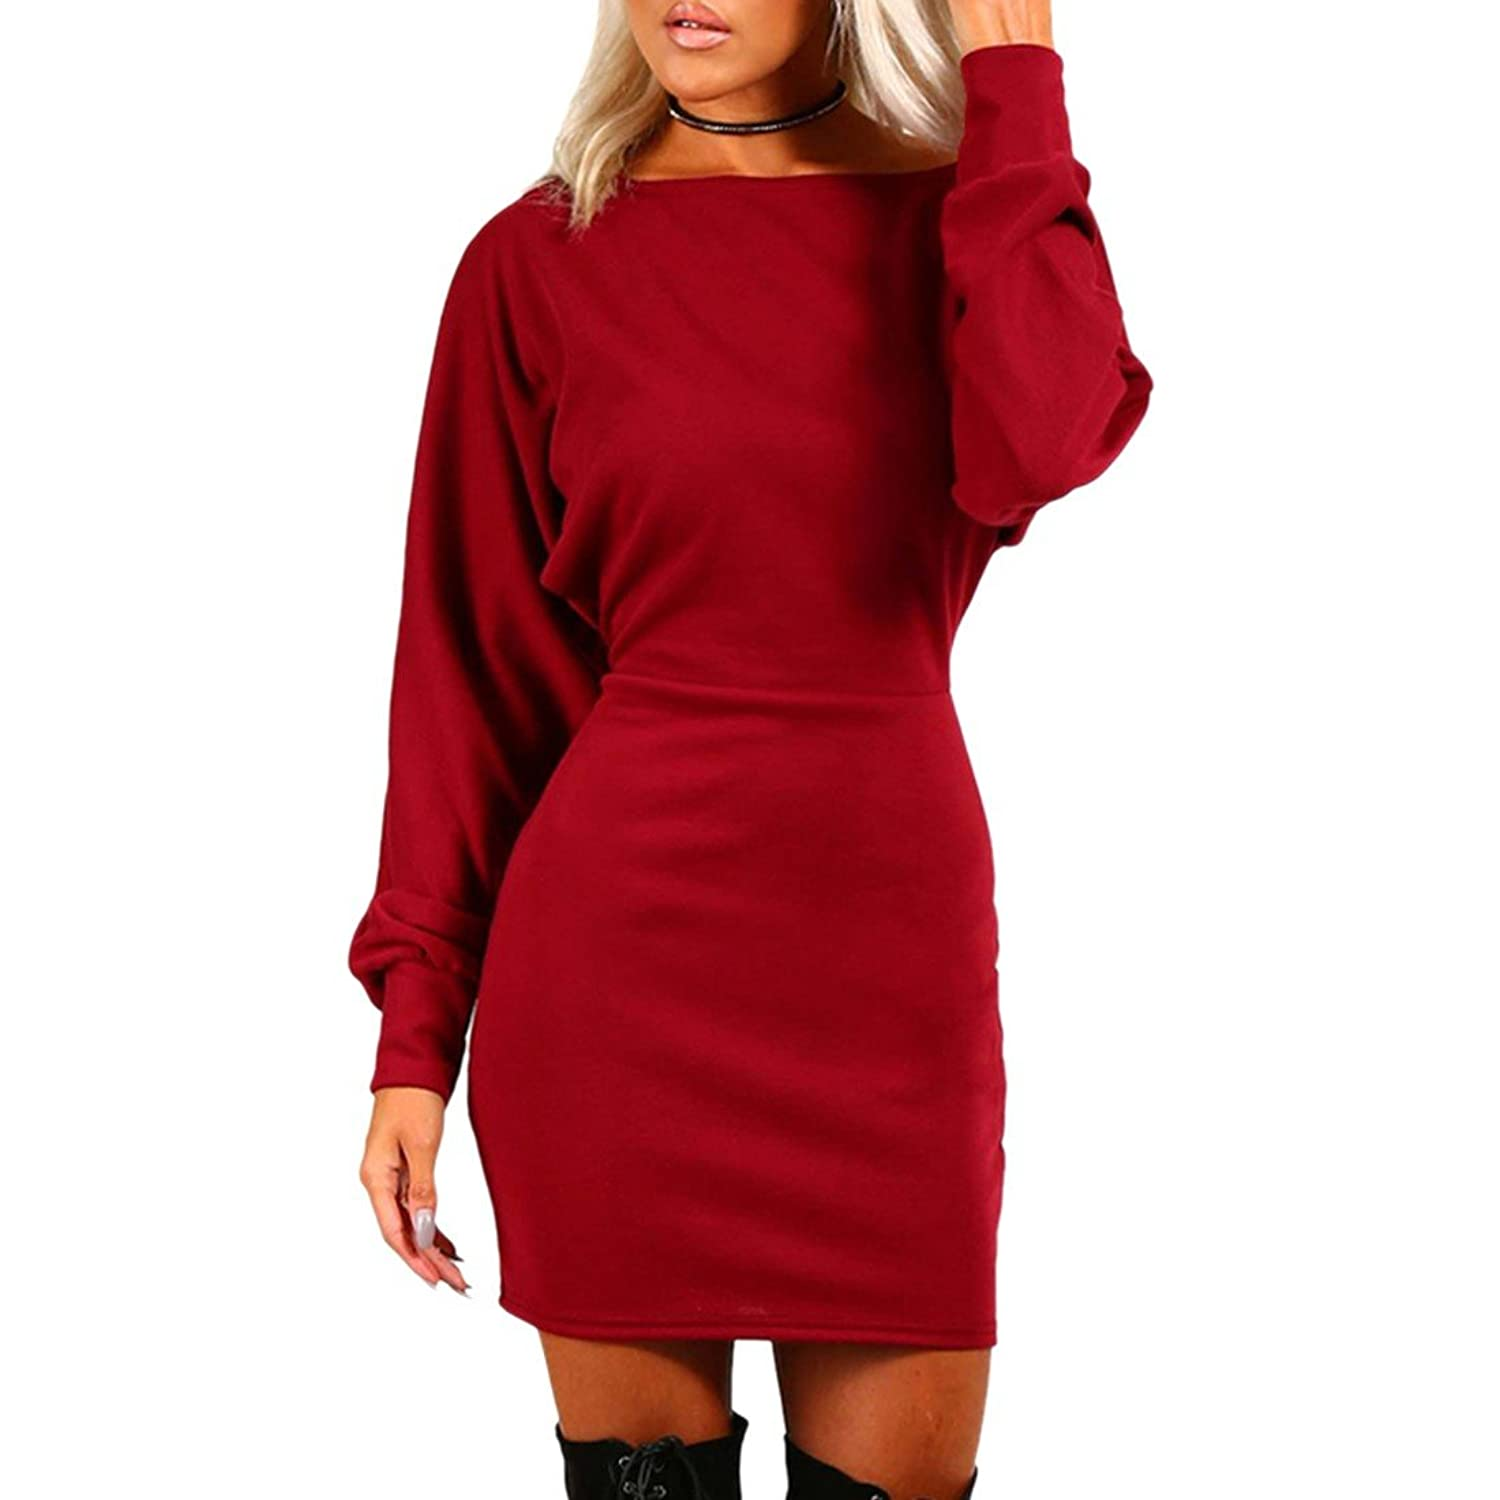 Paixpays Women Long Batwing Sleeve Nightclub Short Dress Bodycon Cocktail Dress